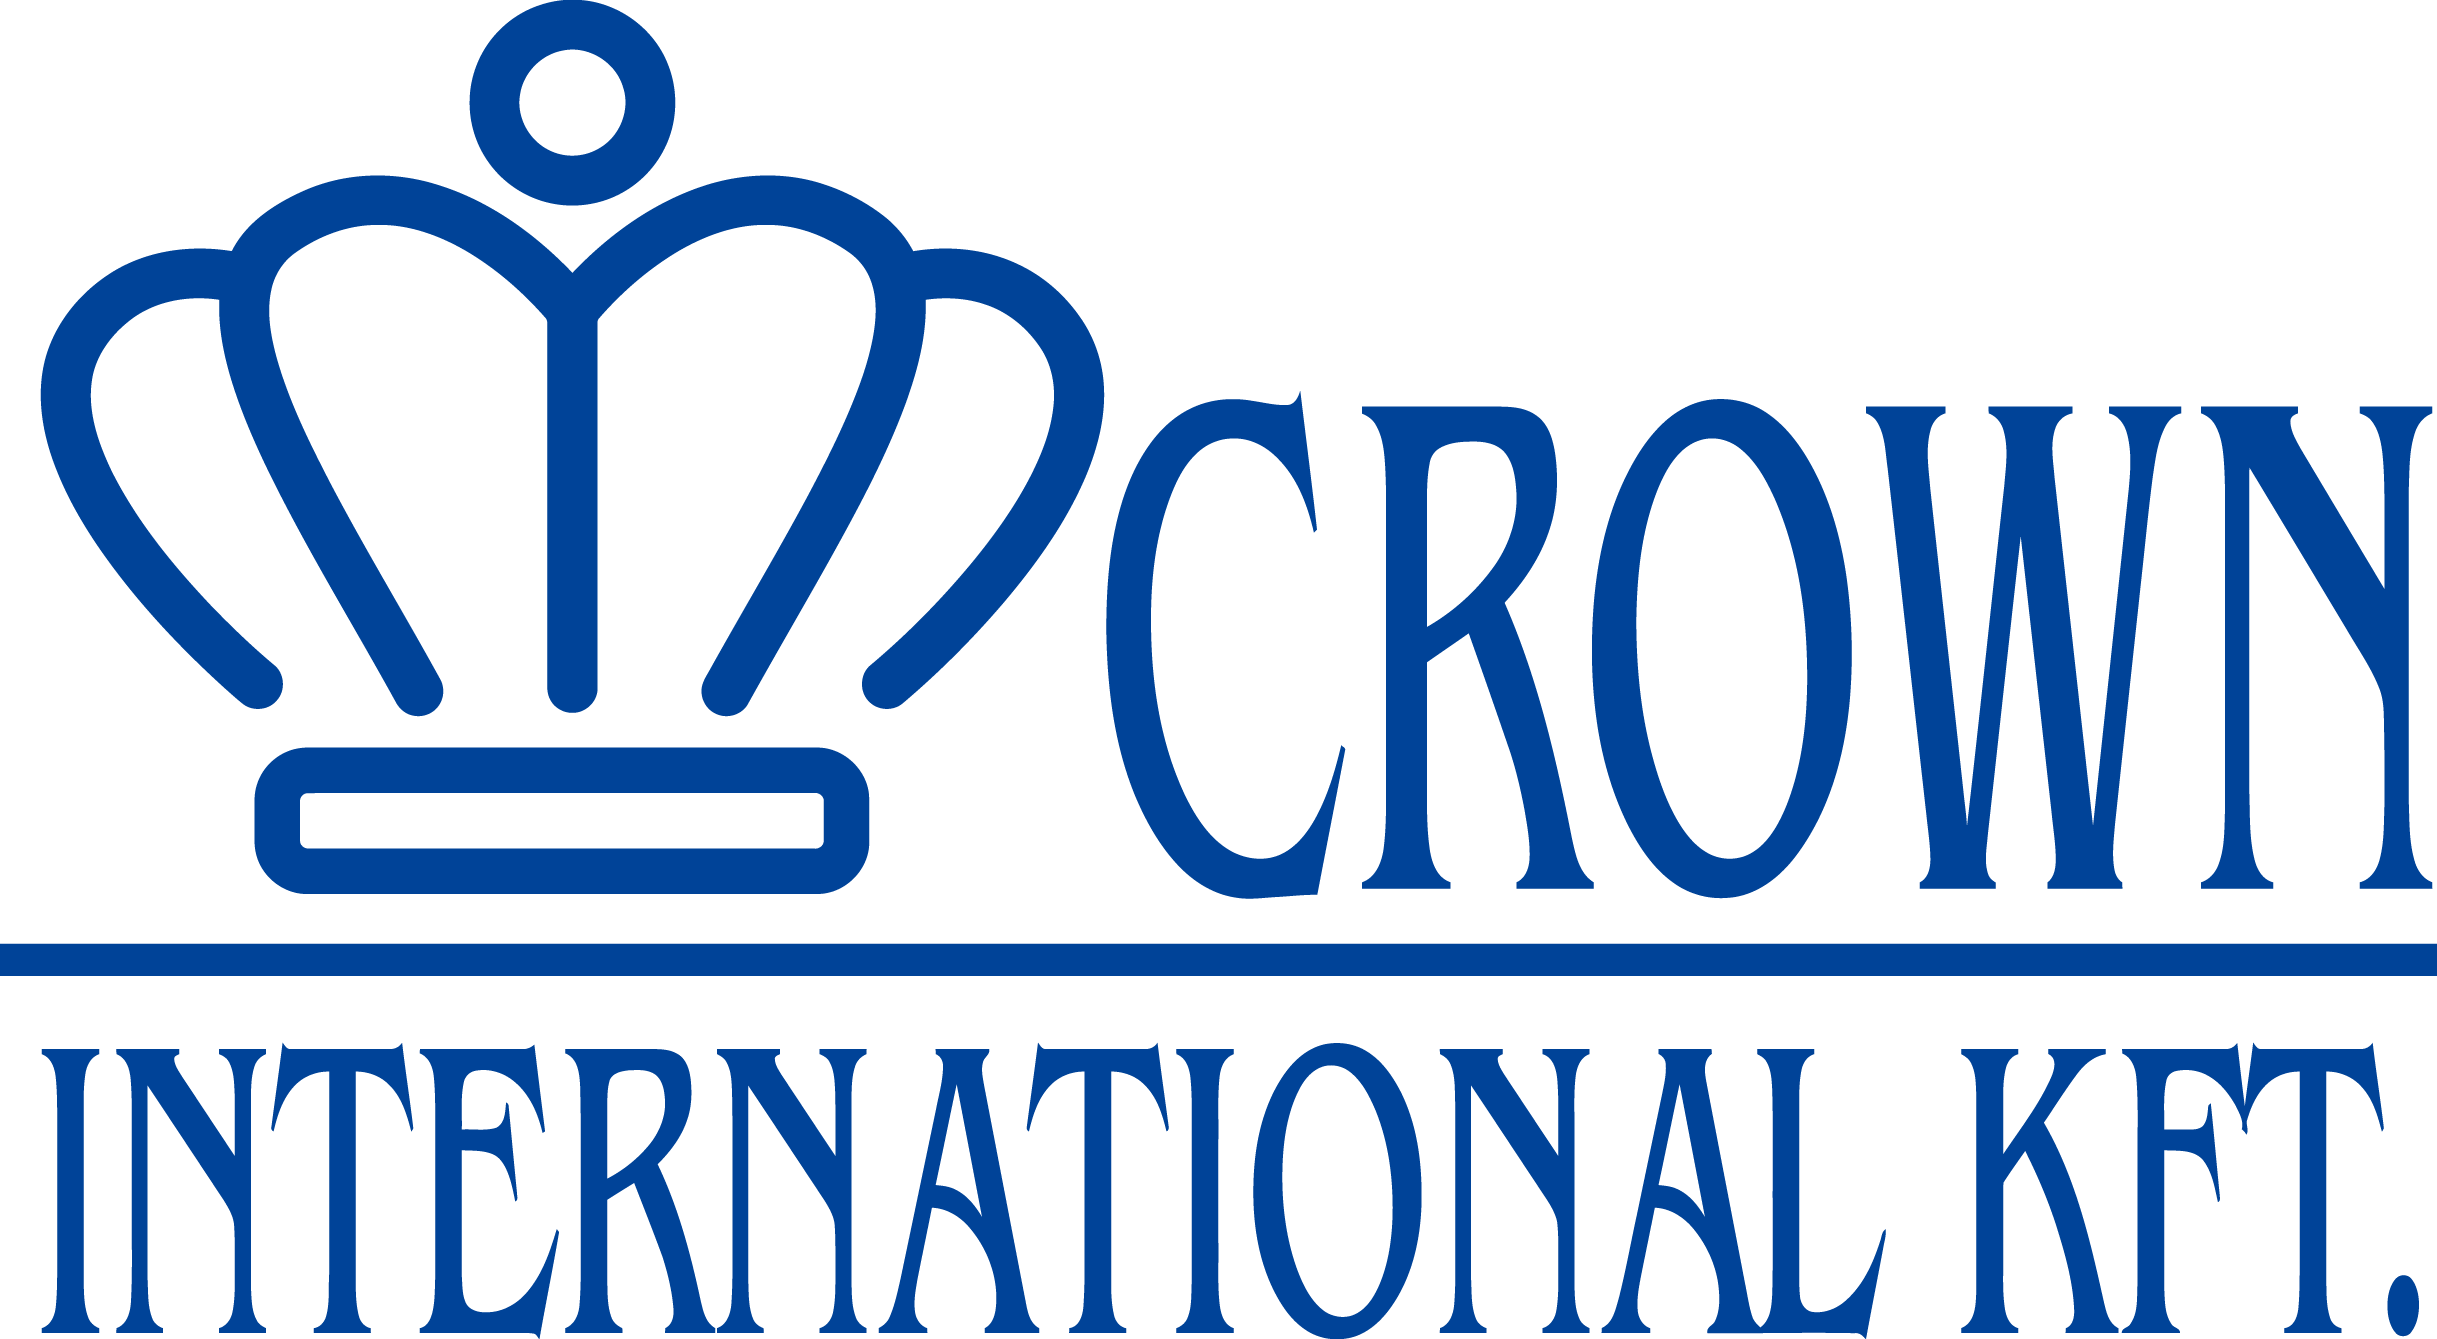 crown_vektoros (002).png